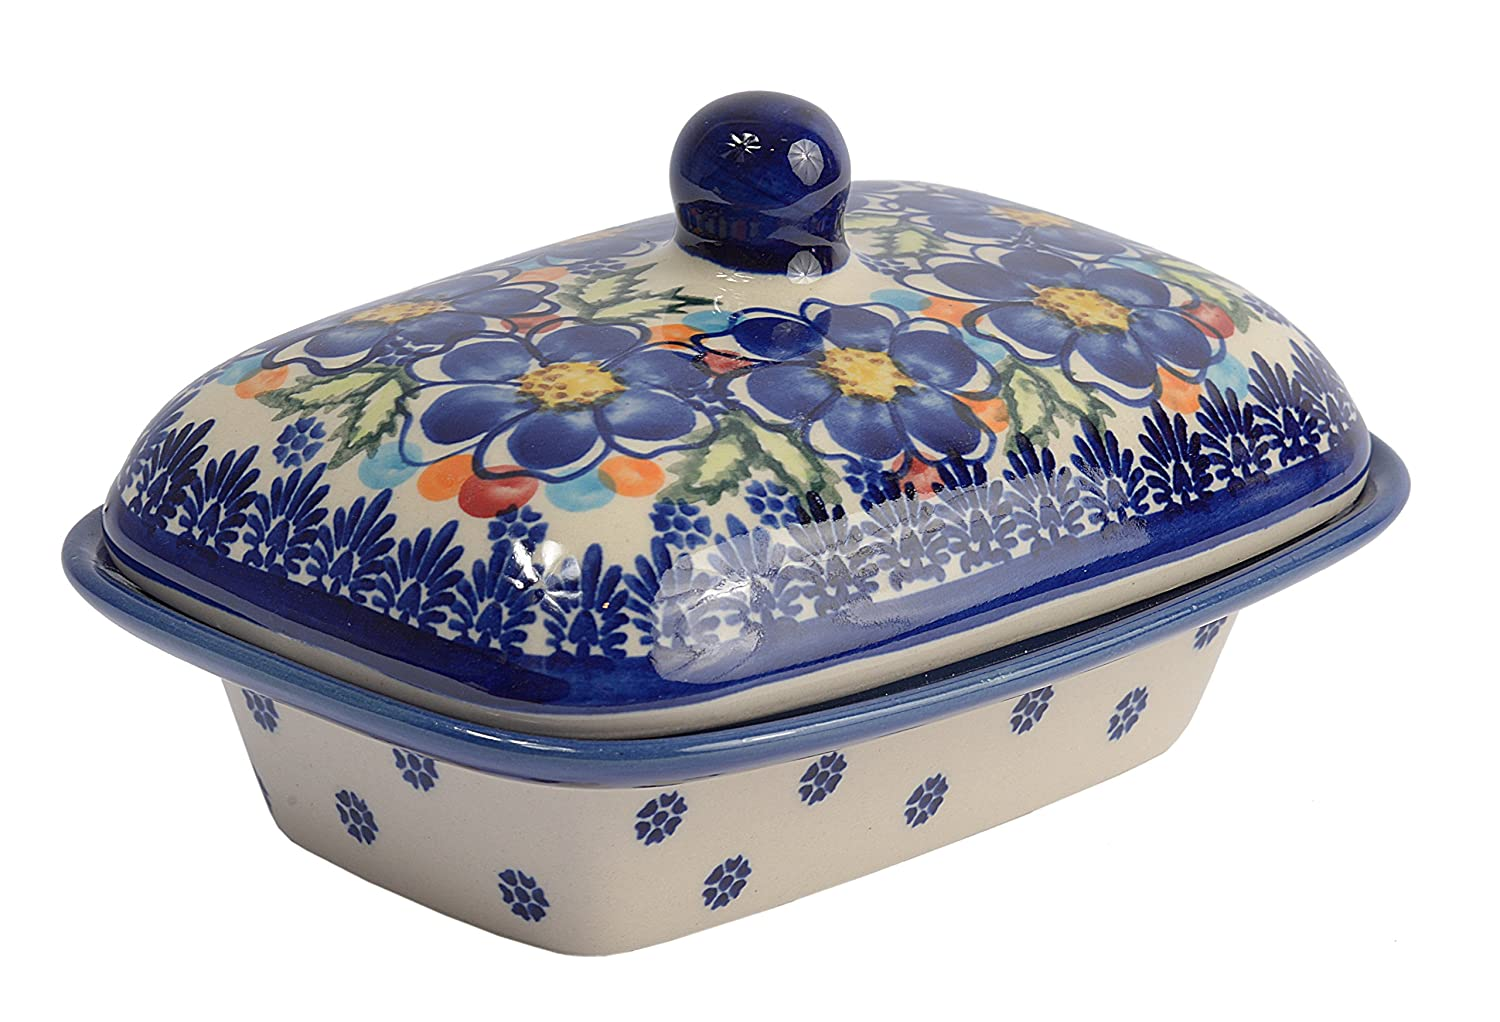 BCV Classic Boleslawiec, Polish Pottery Hand Painted Stoneware, Ceramic Butter Dish with lid 066 (T-001) BCV Boleslawiec Pottery 066-T-001-Q1